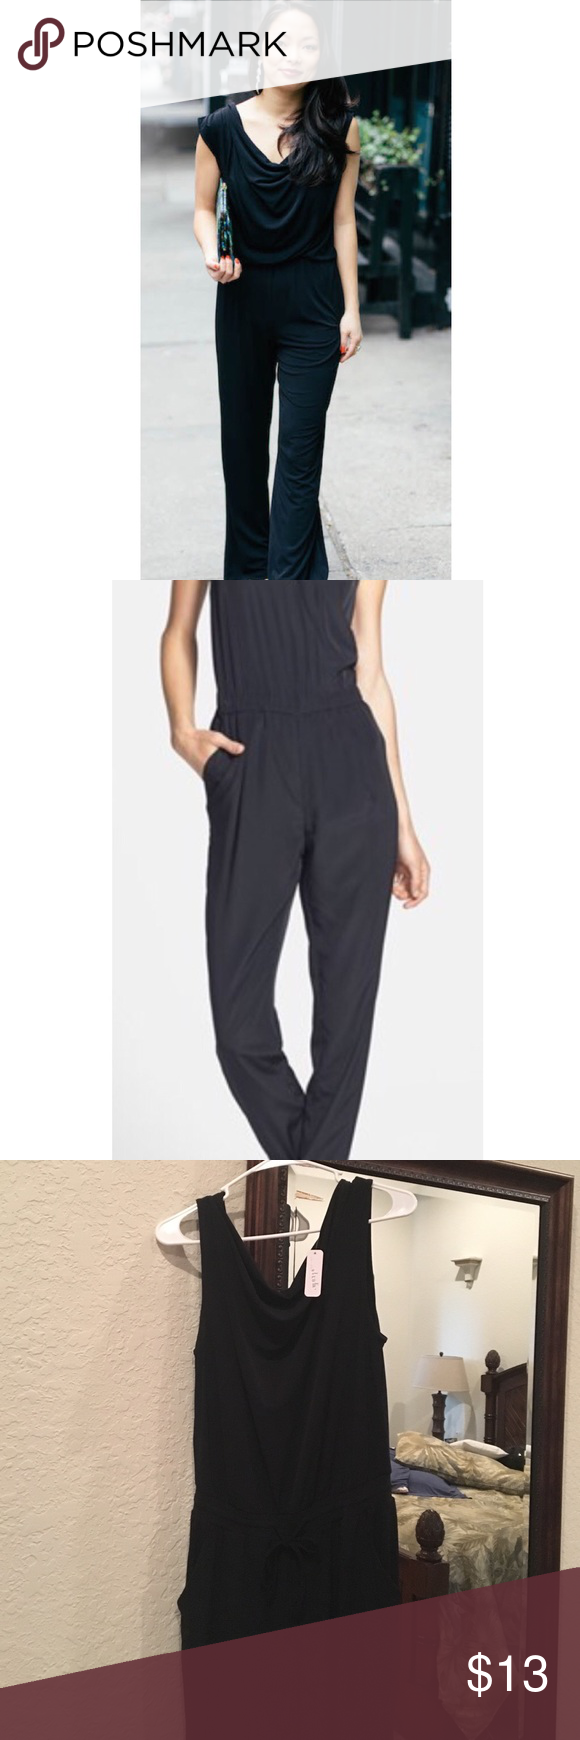 Black Jumpsuit NWT Black satiny material never worn jumpsuit with elastic cinched drawstring waist. Perfect for the holiday season with heels or nice flats! Pair this with my tiled bag I have listed for a complete look. 😍 Charming Charlie Pants Jumpsuits & Rompers